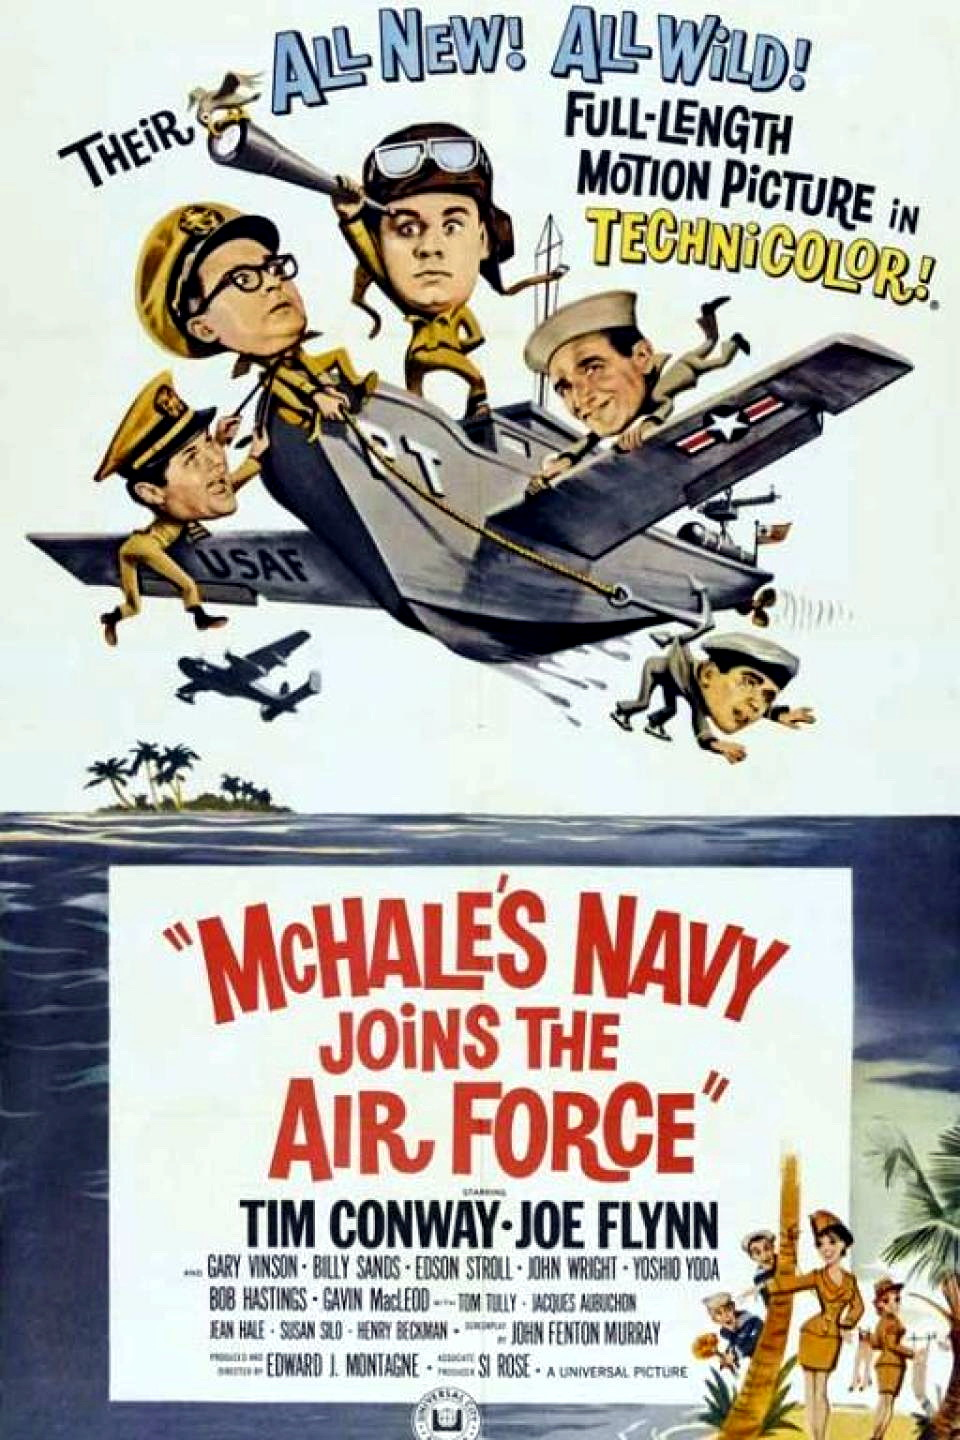 McHale's Navy Joins the Air Force (1965)